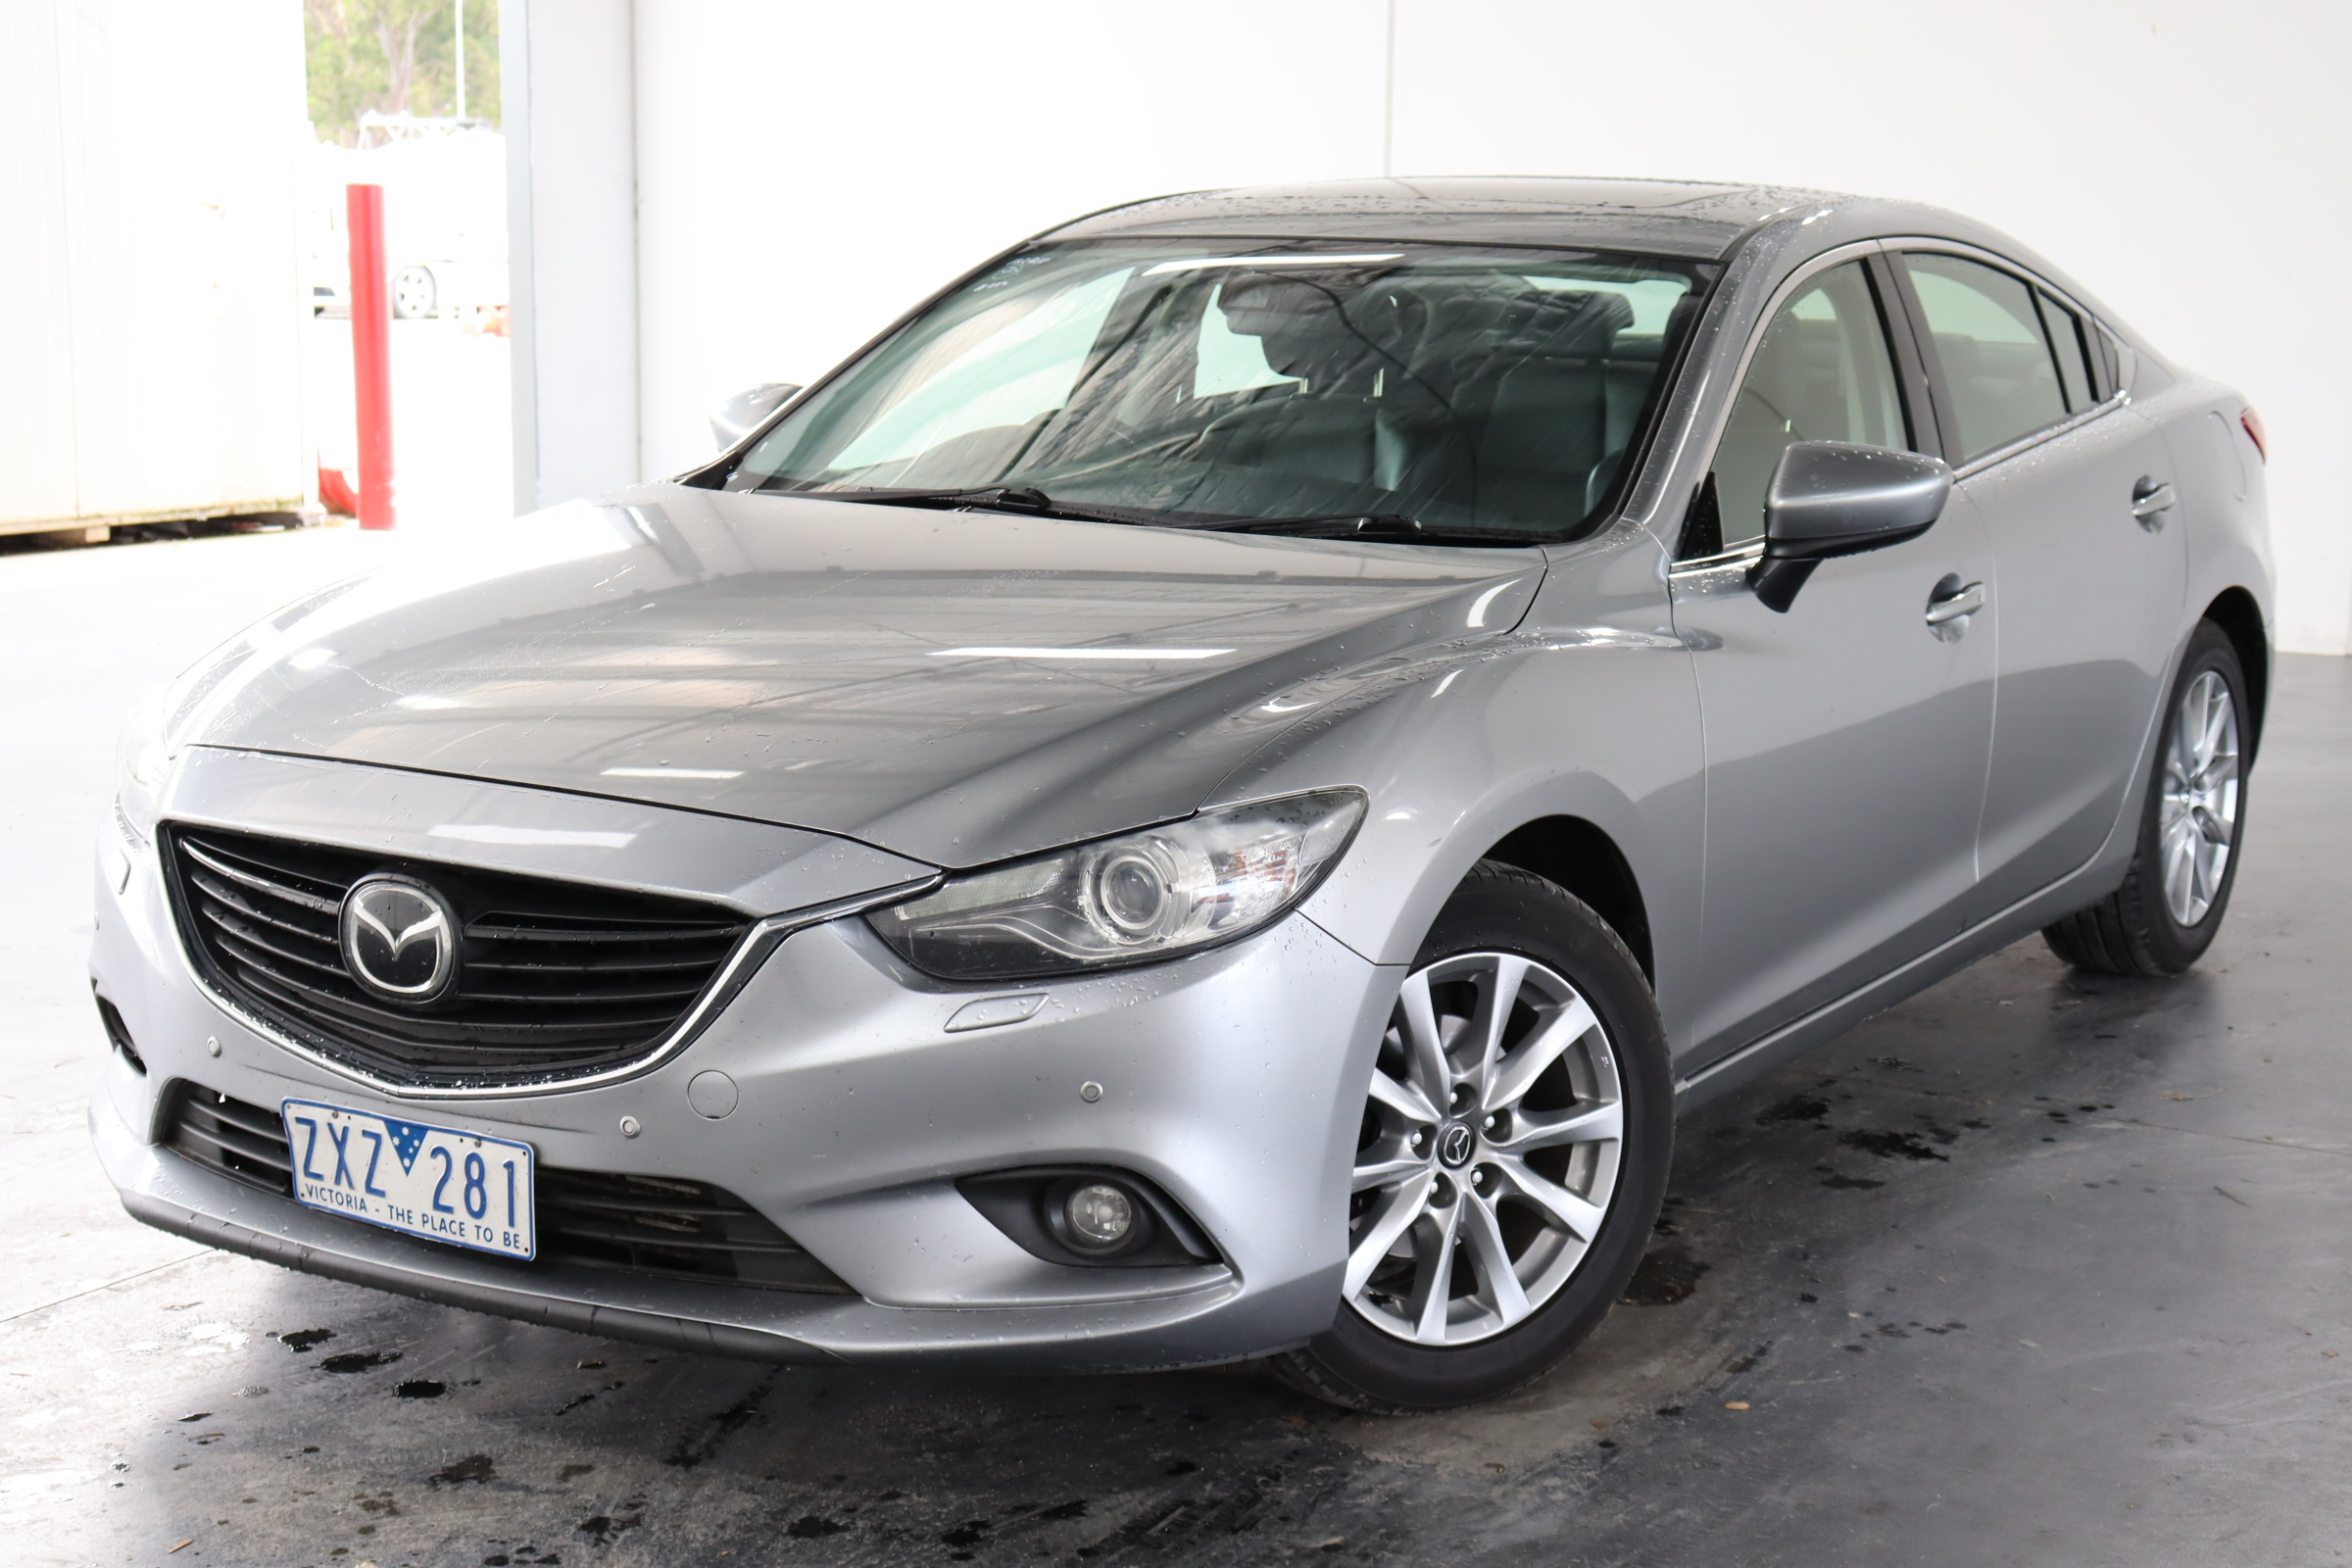 2012 Mazda 6 Atenza GJ Turbo Diesel Automatic Sedan